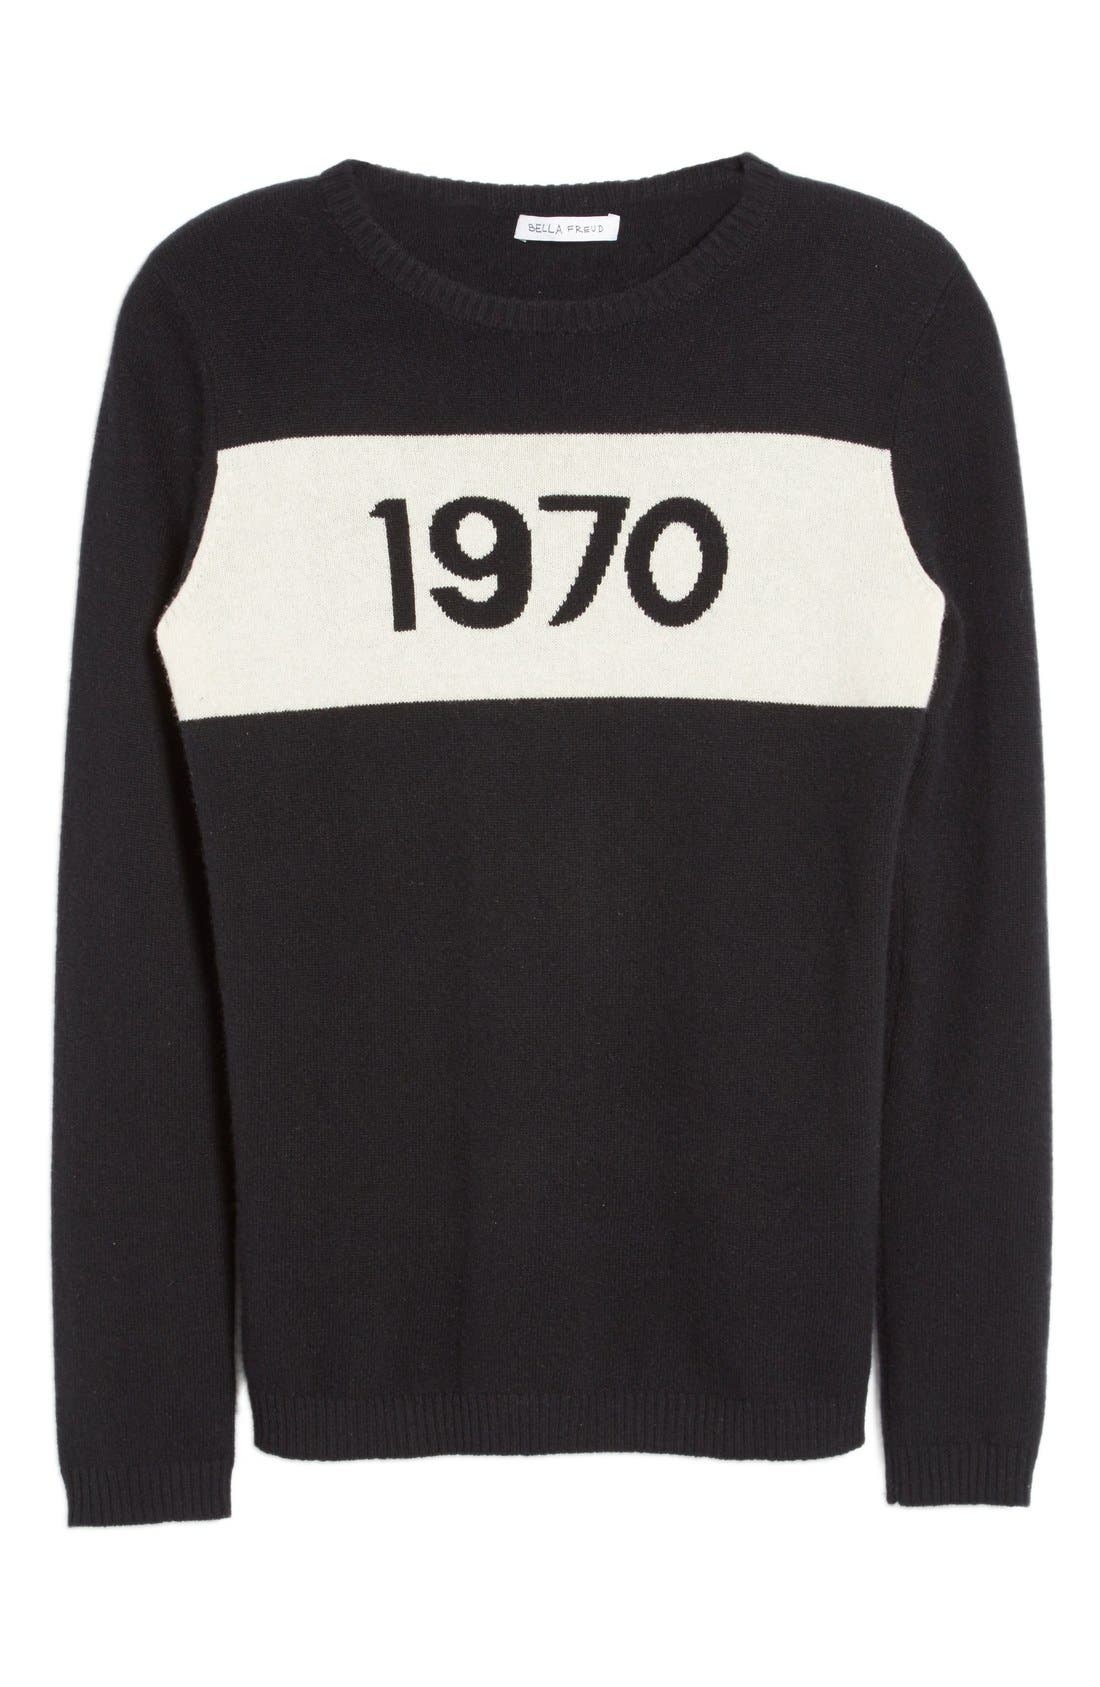 '1970' Wool Sweater,                             Alternate thumbnail 4, color,                             Black